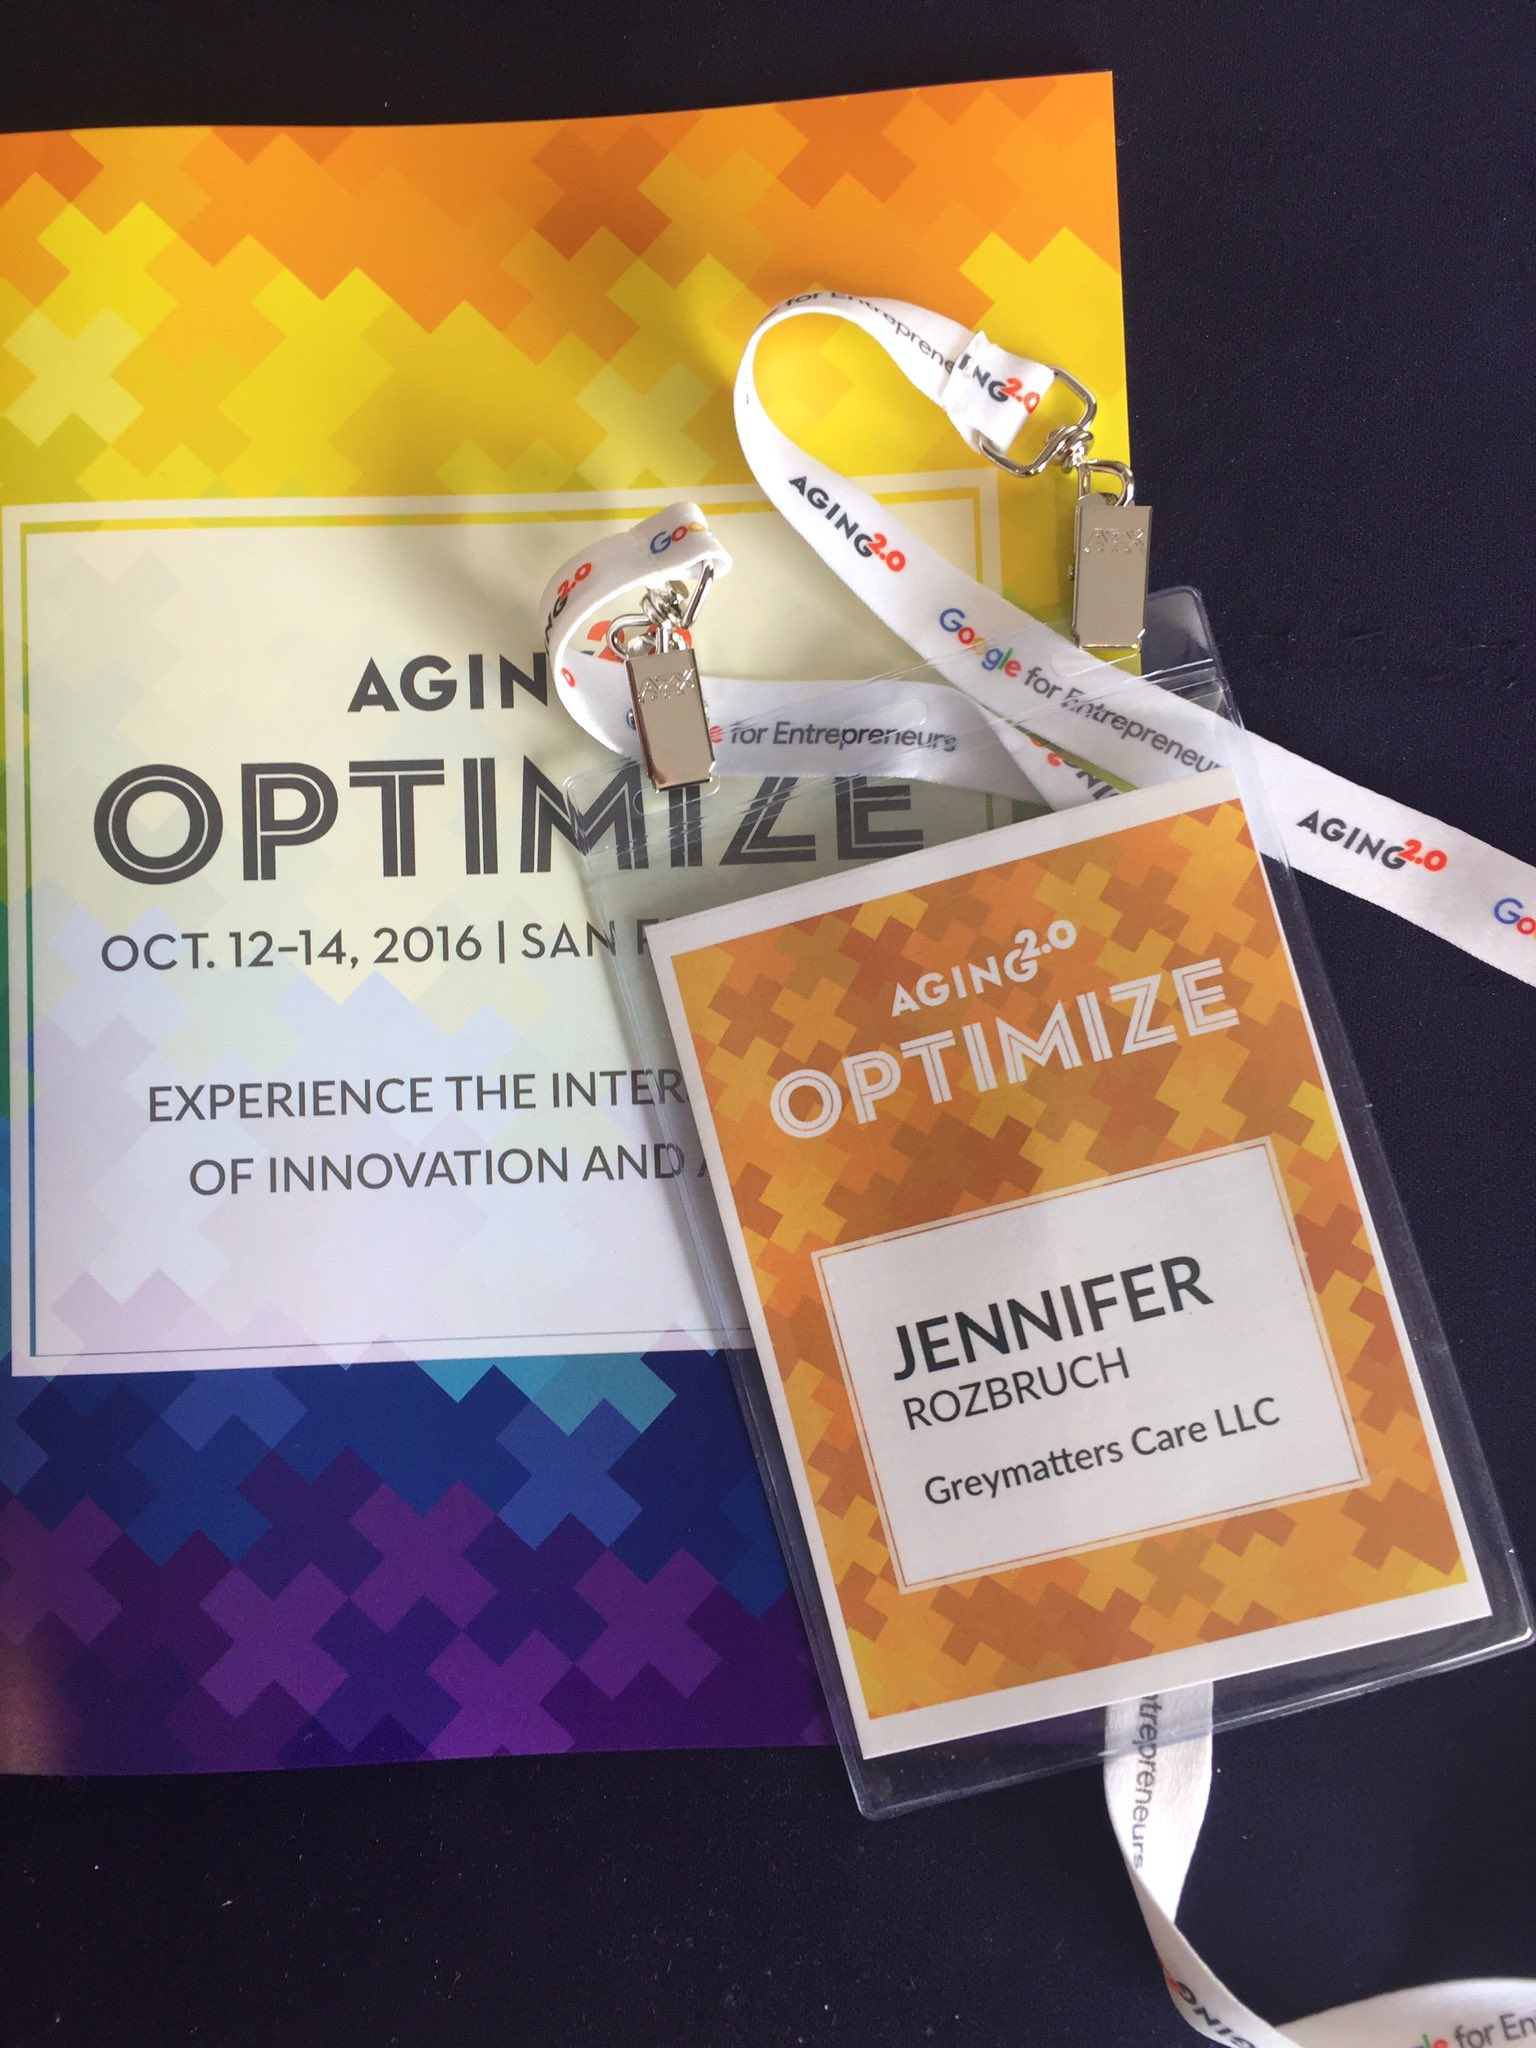 Here we go! Excited to finally arrive at the #A2OPTIMIZE conference in SF. @Aging20 https://t.co/JXaQHVWib0